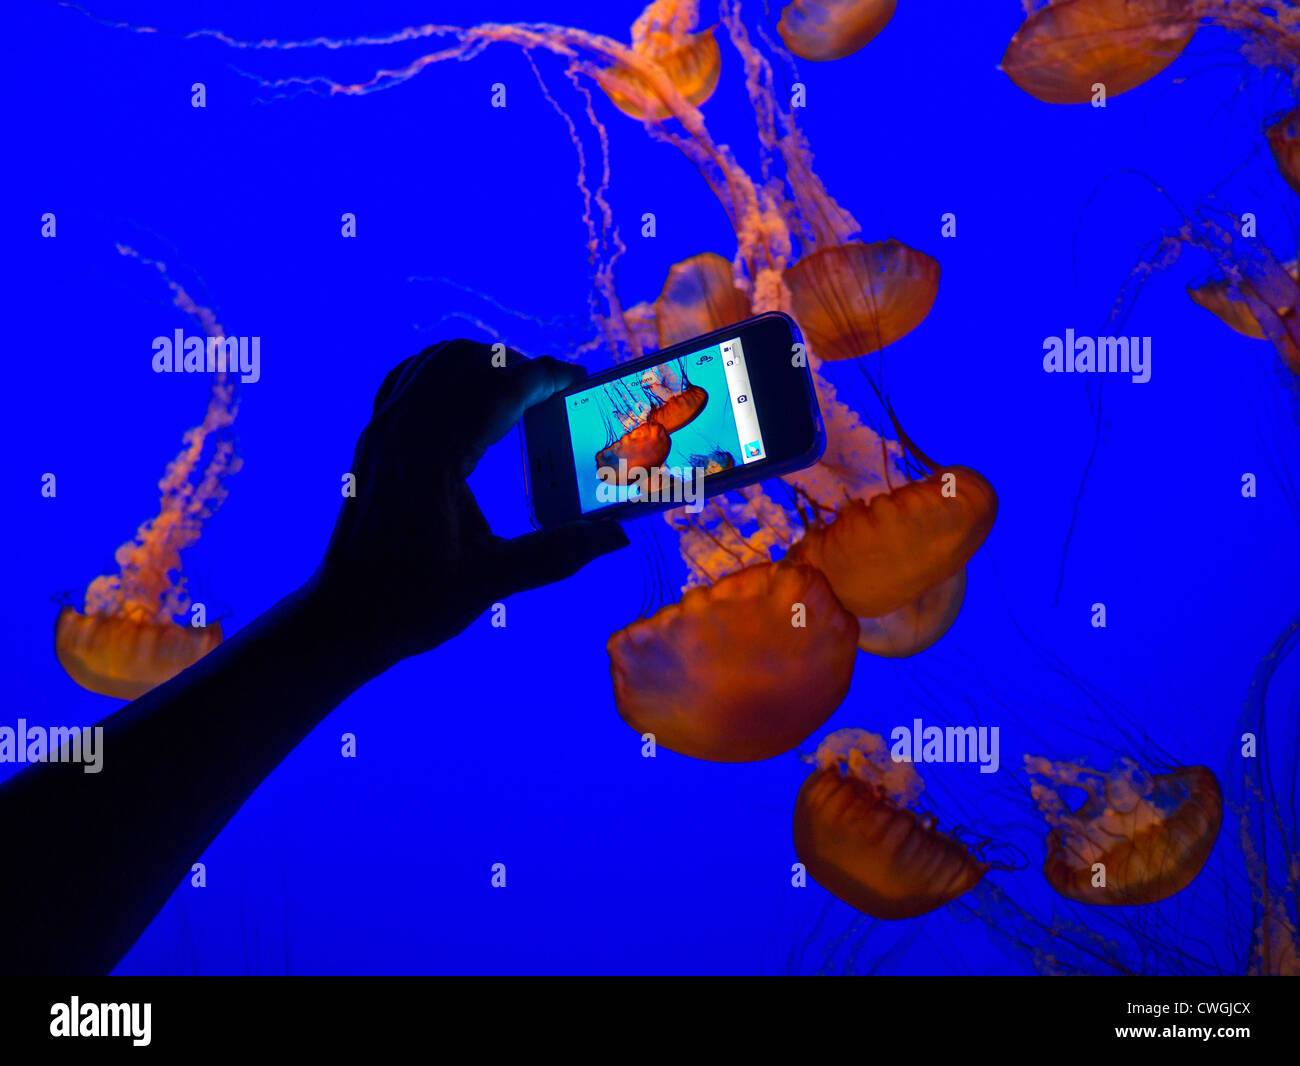 Hand holding Apple iPhone 4s recording low light image of JellyFish floating in Monterey Bay Aquarium California - Stock Image